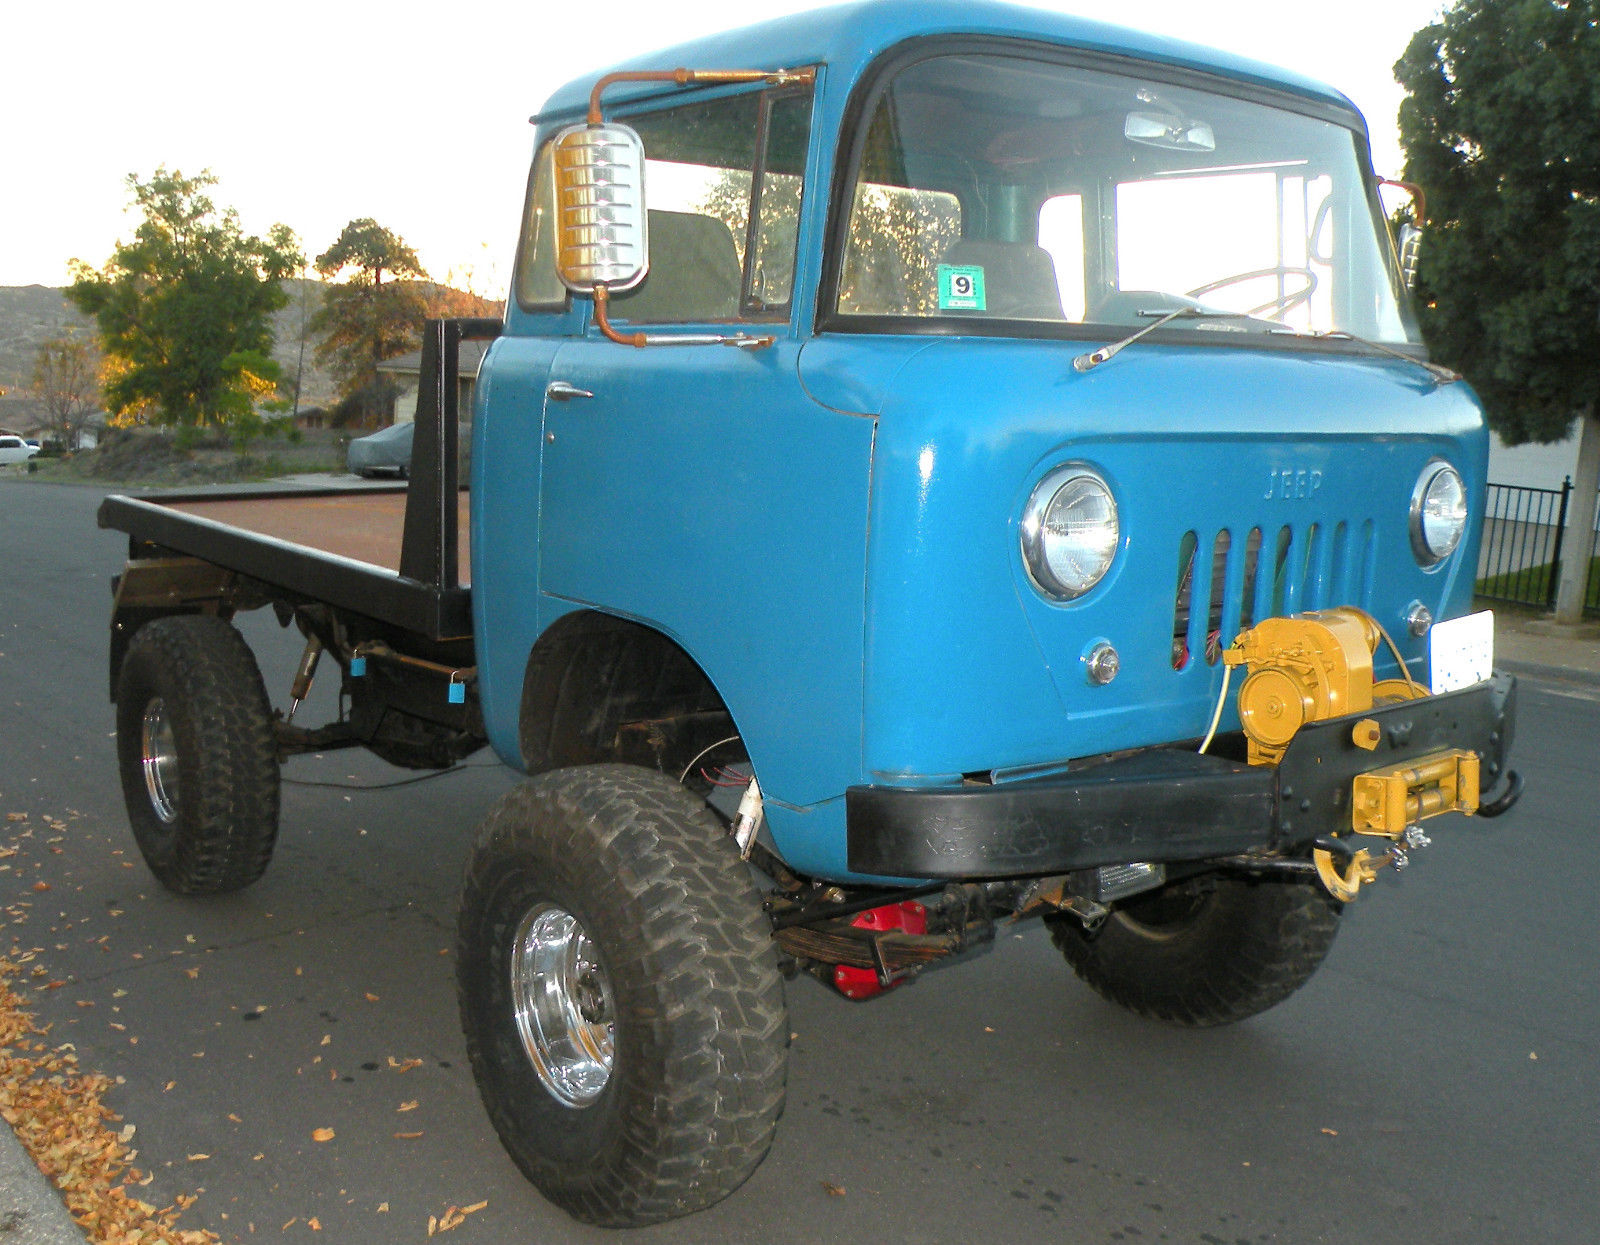 1956 Chevrolet Truck For Sale On Craigs List Autos Post